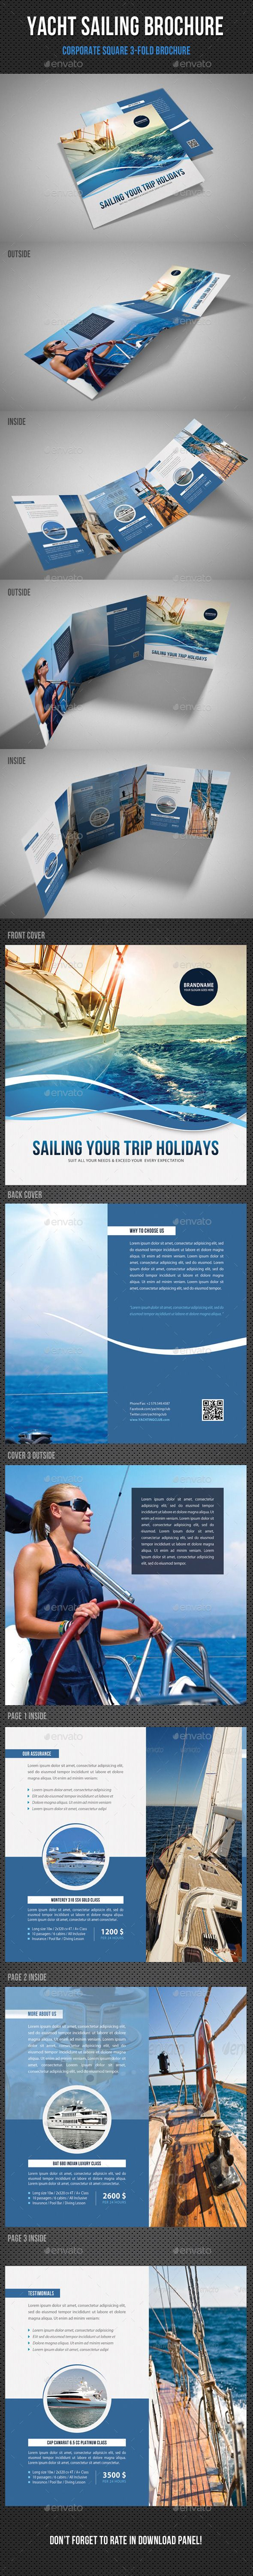 Yacht Boat Sailing Square 3-Fold Brochure Tempalte #design Download: http://graphicriver.net/item/yacht-boat-sailing-square-3fold-brochure-02/11339703?ref=ksioks